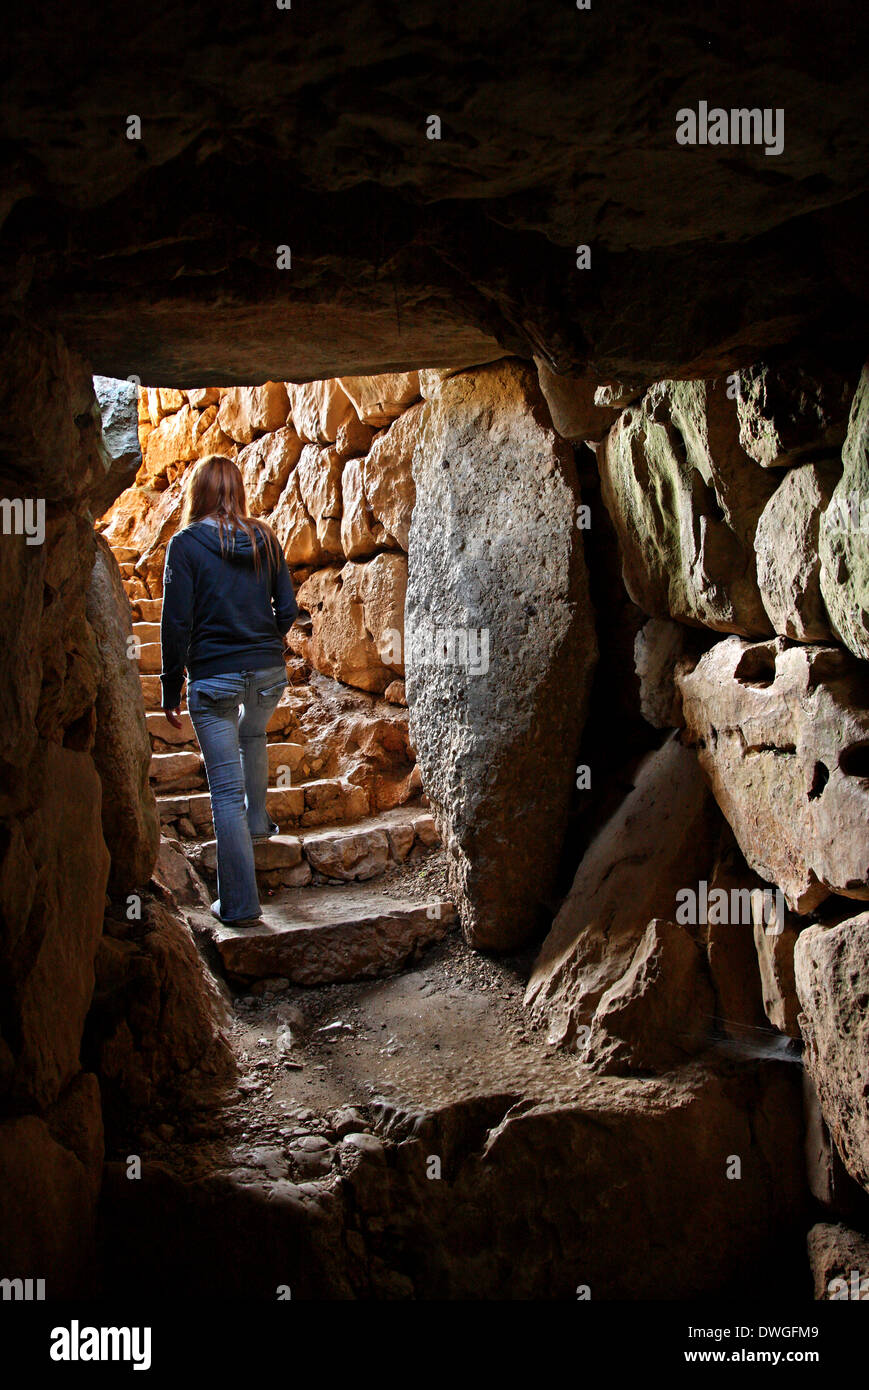 Coming out of the tunnel of the underground cistern in Ancient Mycenae ('Mykines'), Argolis (Argolida), Peloponnese, Greece. - Stock Image